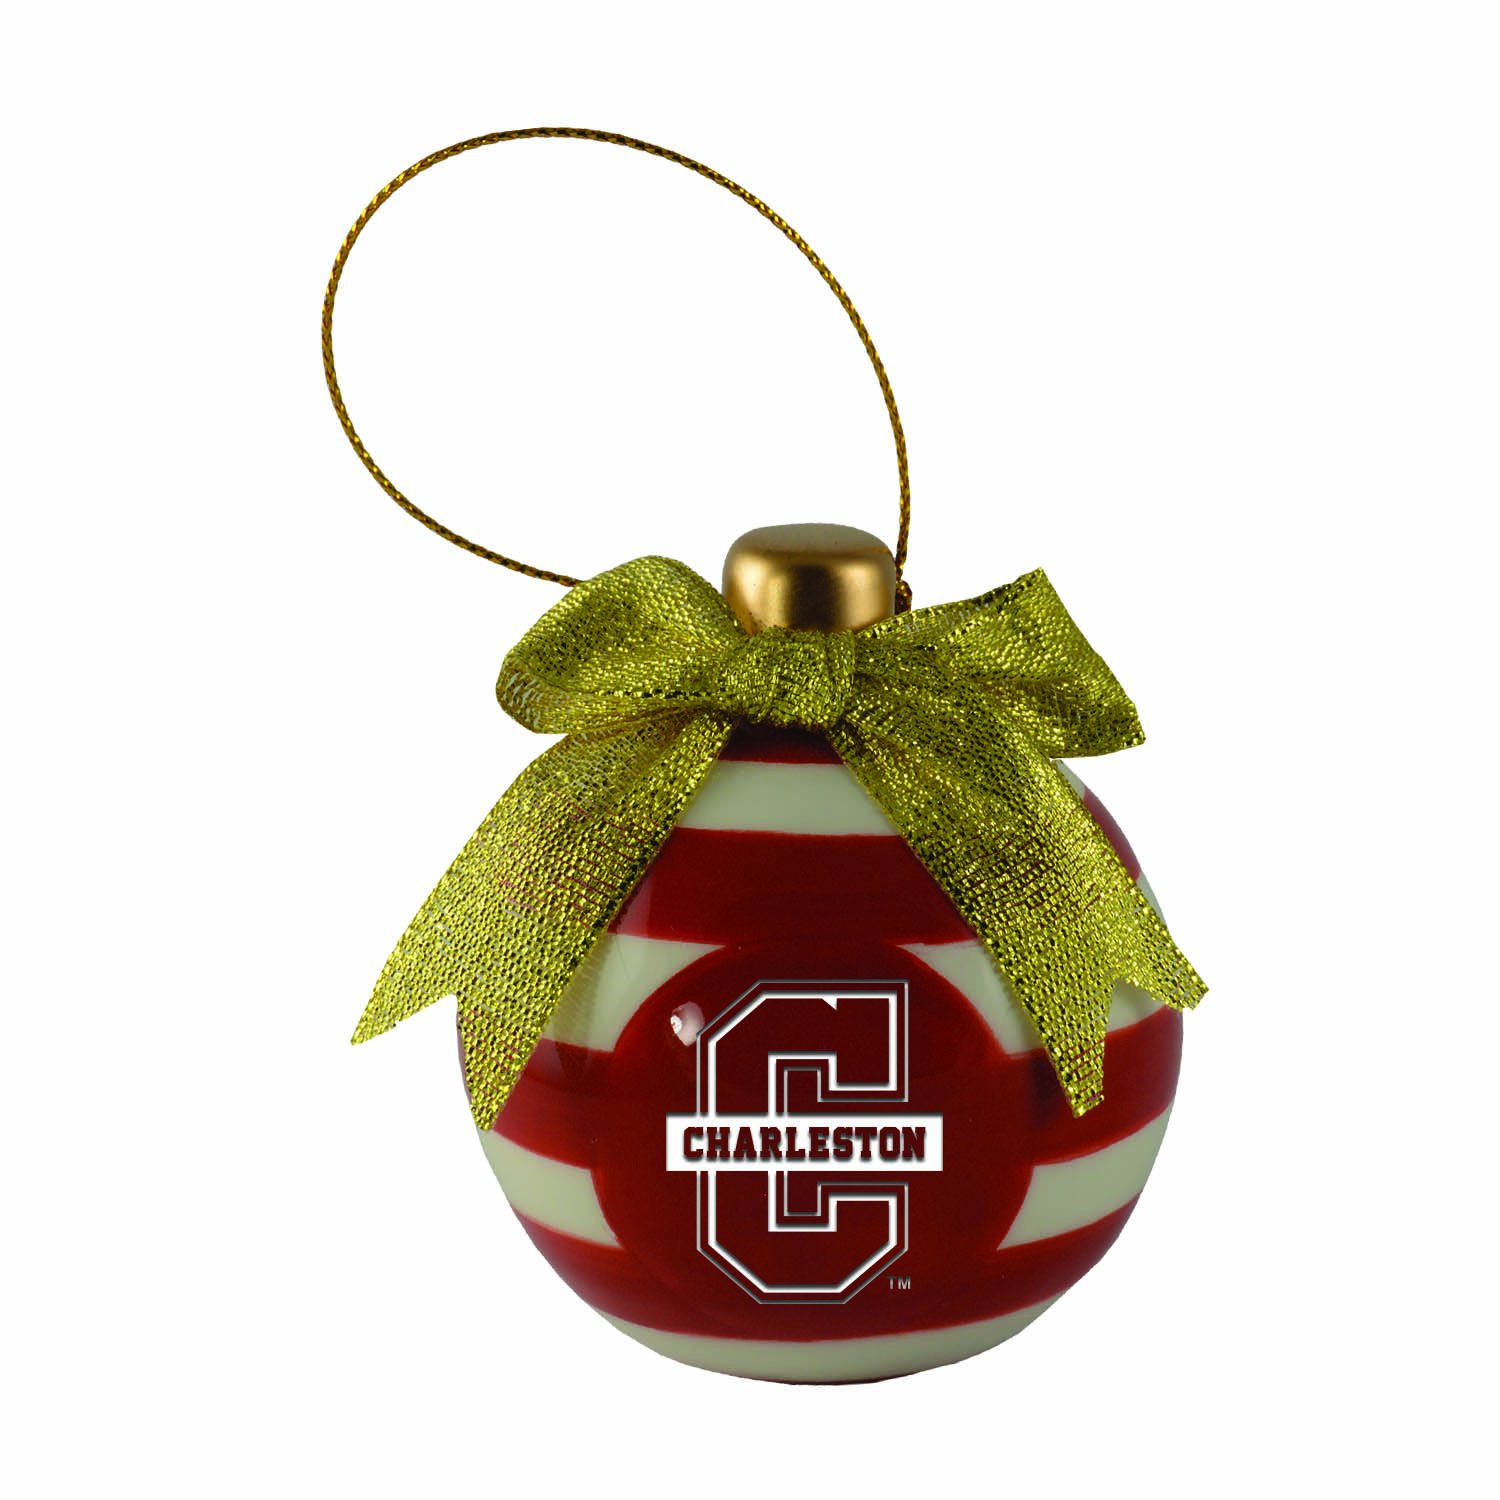 College of Charleston-Christmas Bulb Ornament by LXG, Inc. (Image #1)